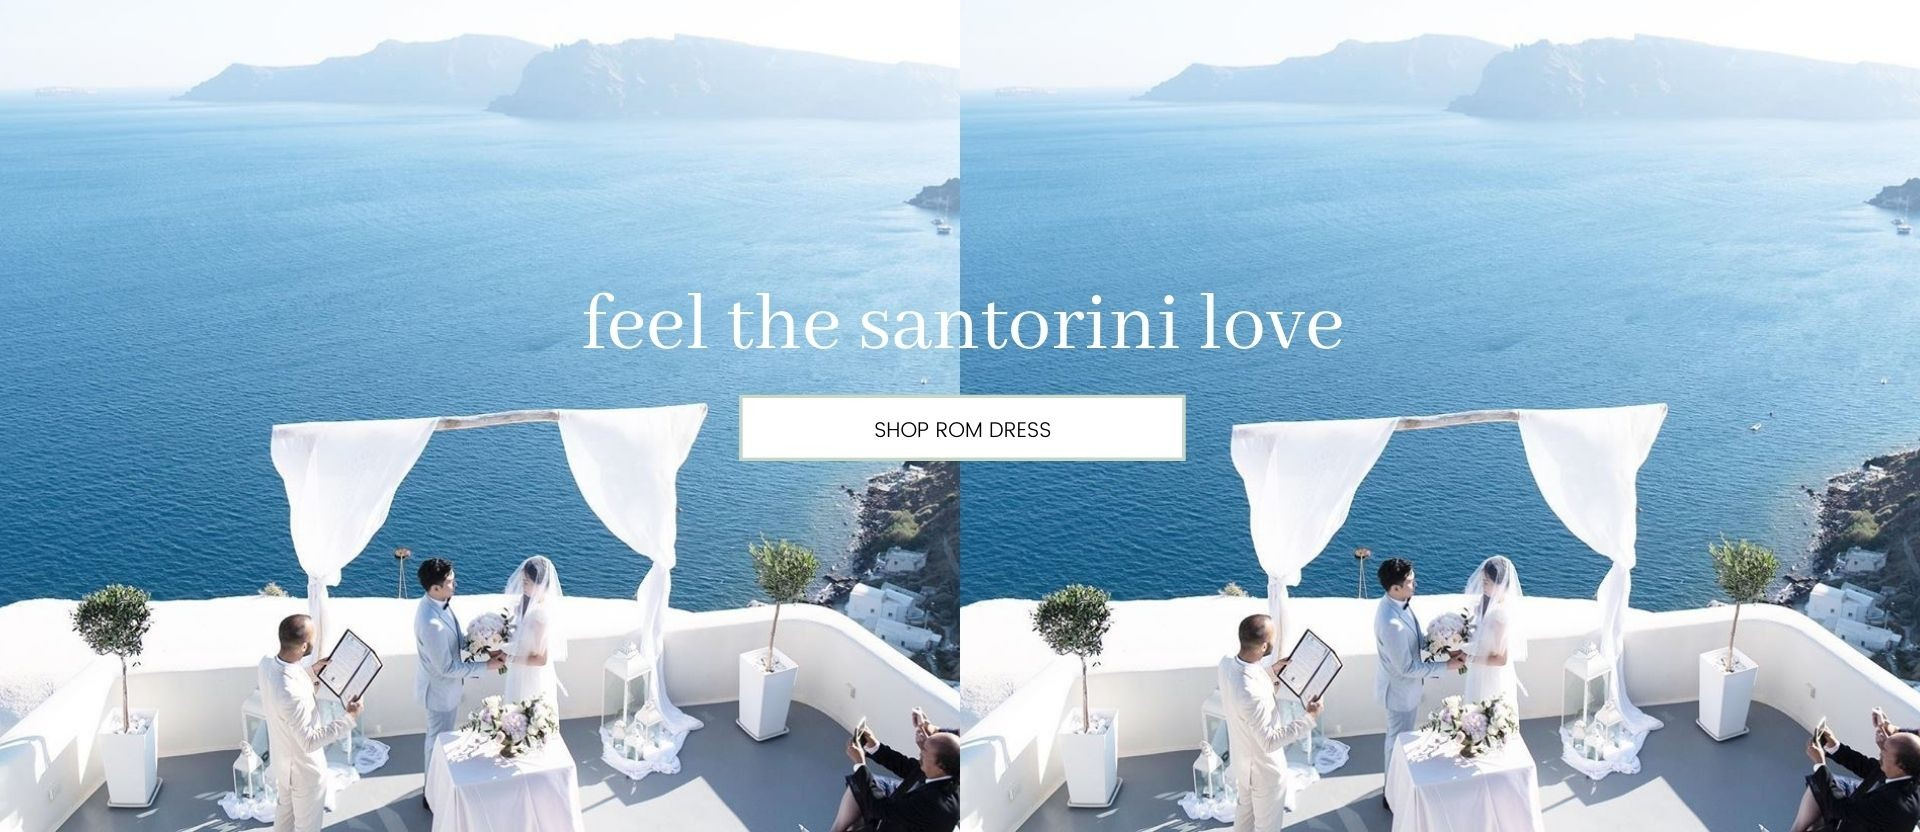 SANTORINI GREECE: ROM CEREMONY